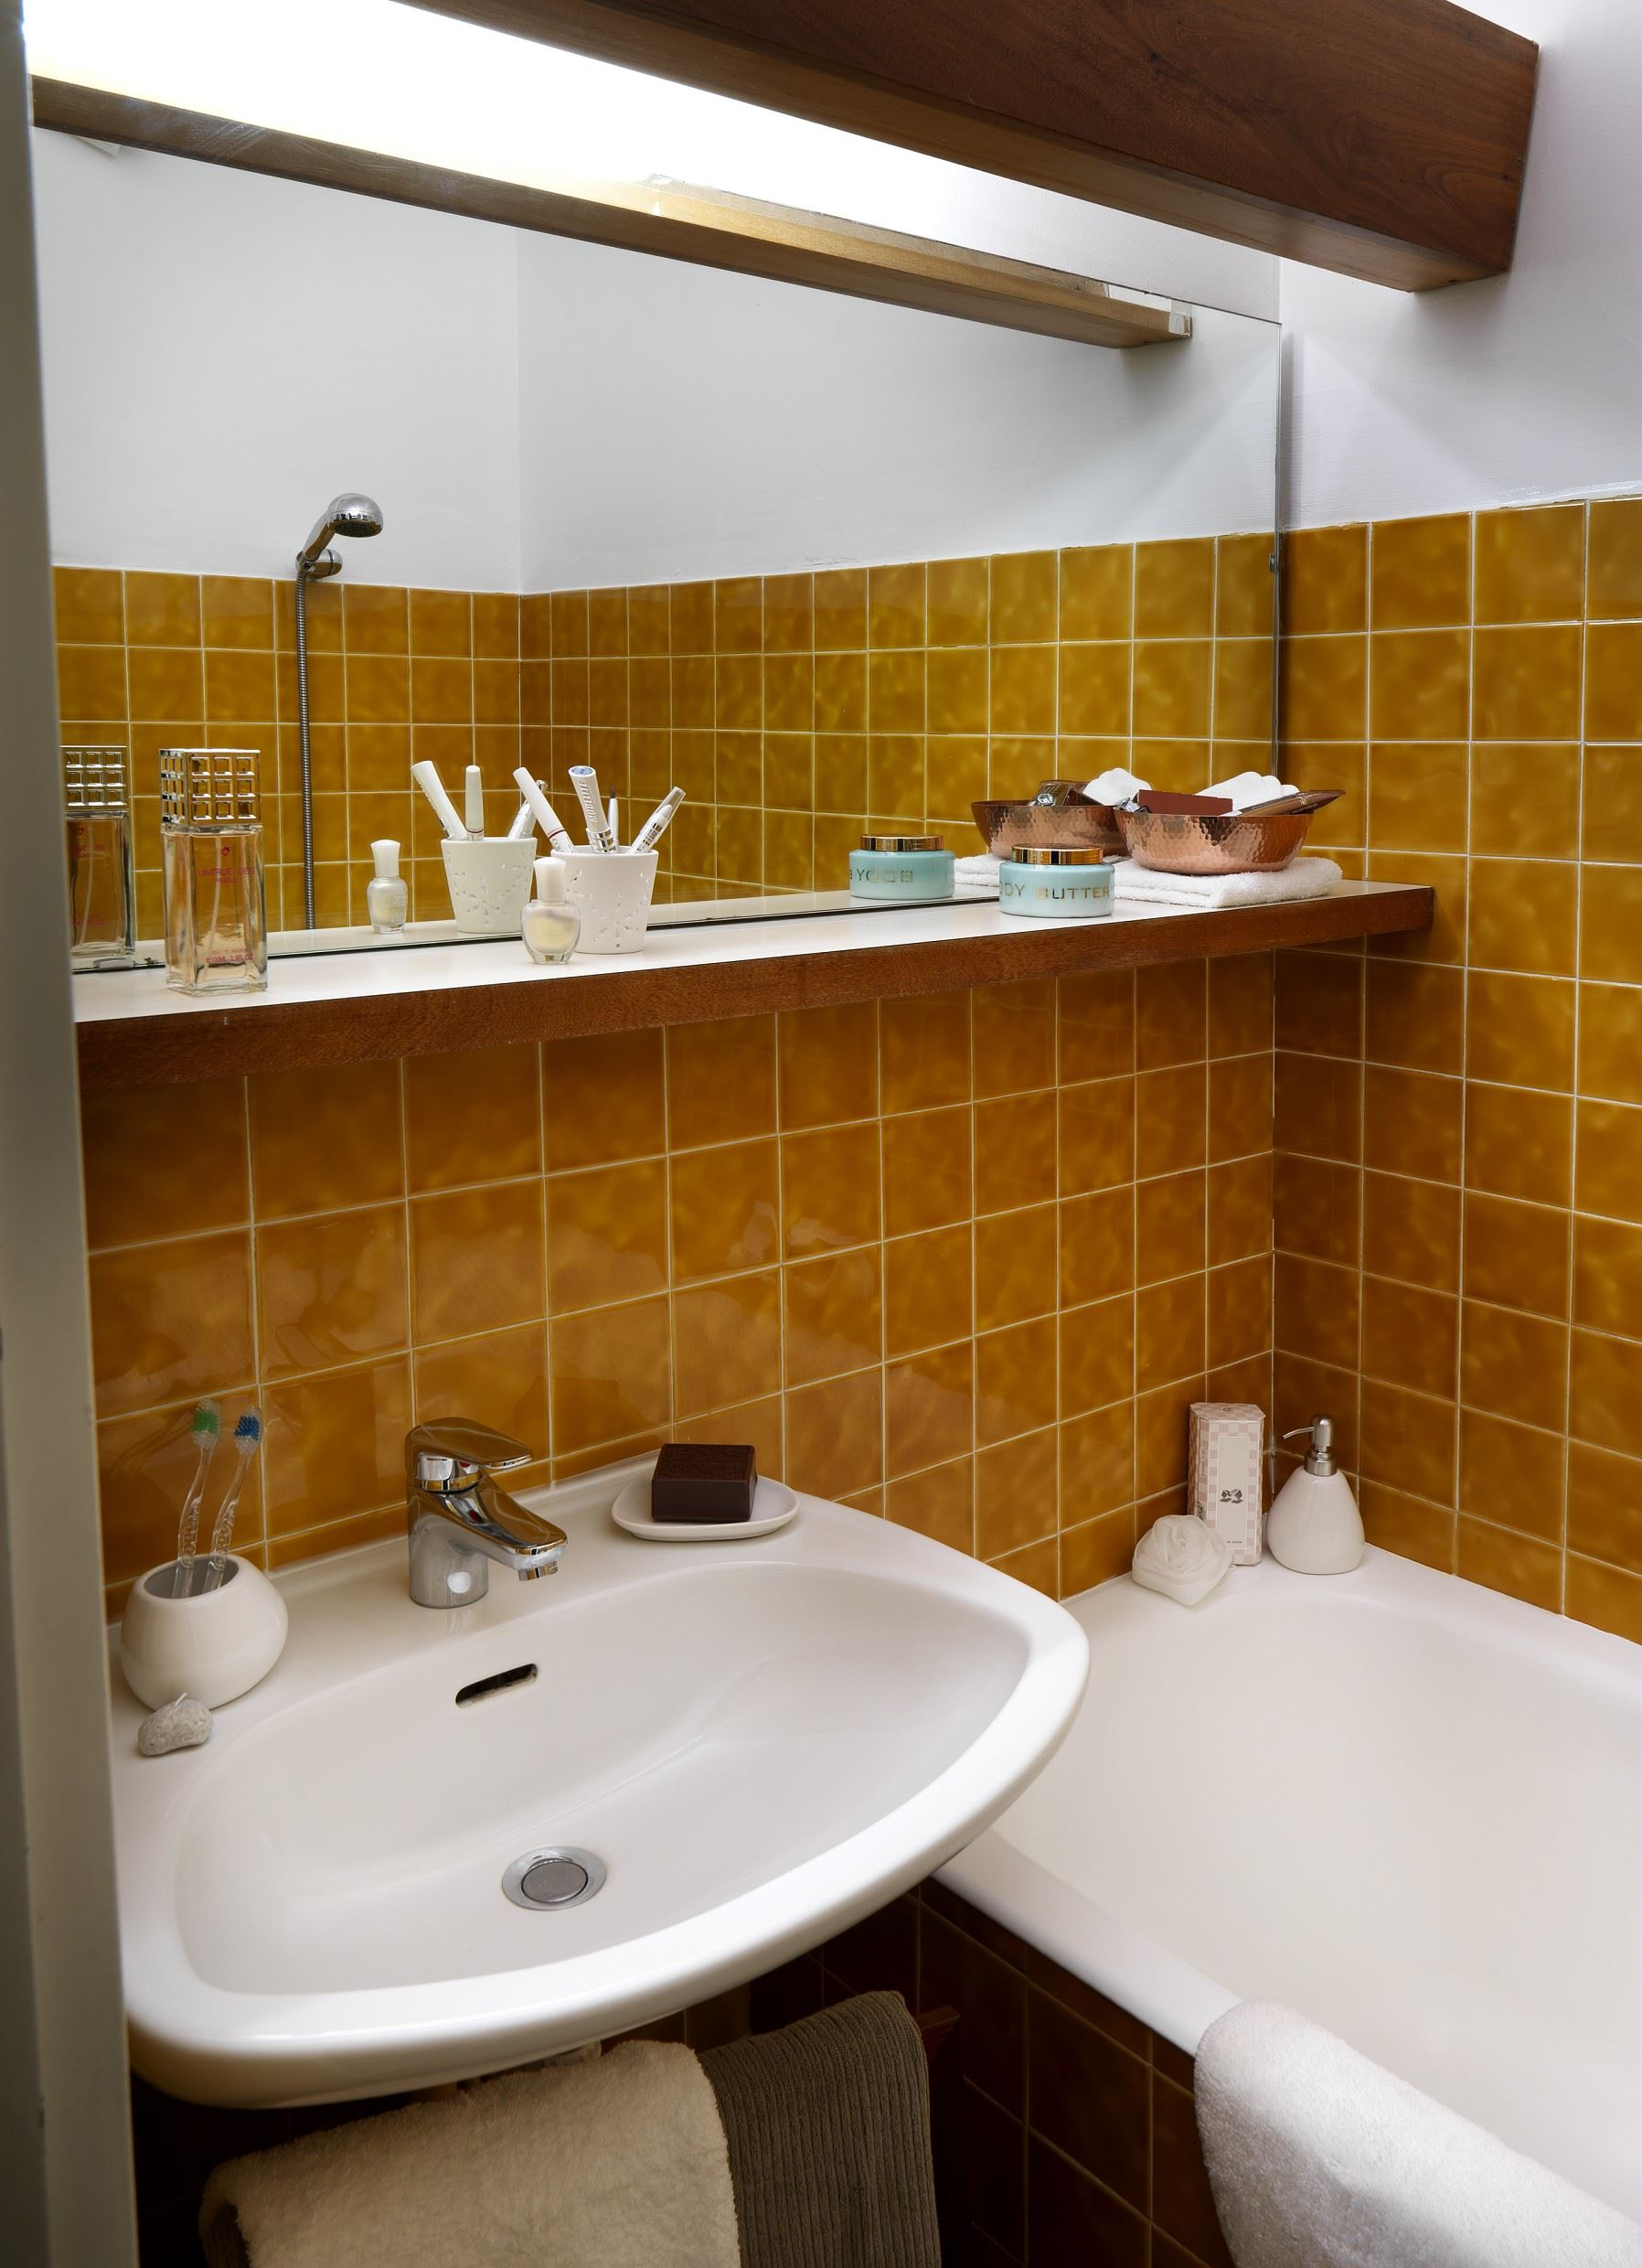 Residence Clubhotel Le Gypaëte - Studio - 4 Persons (ABR)